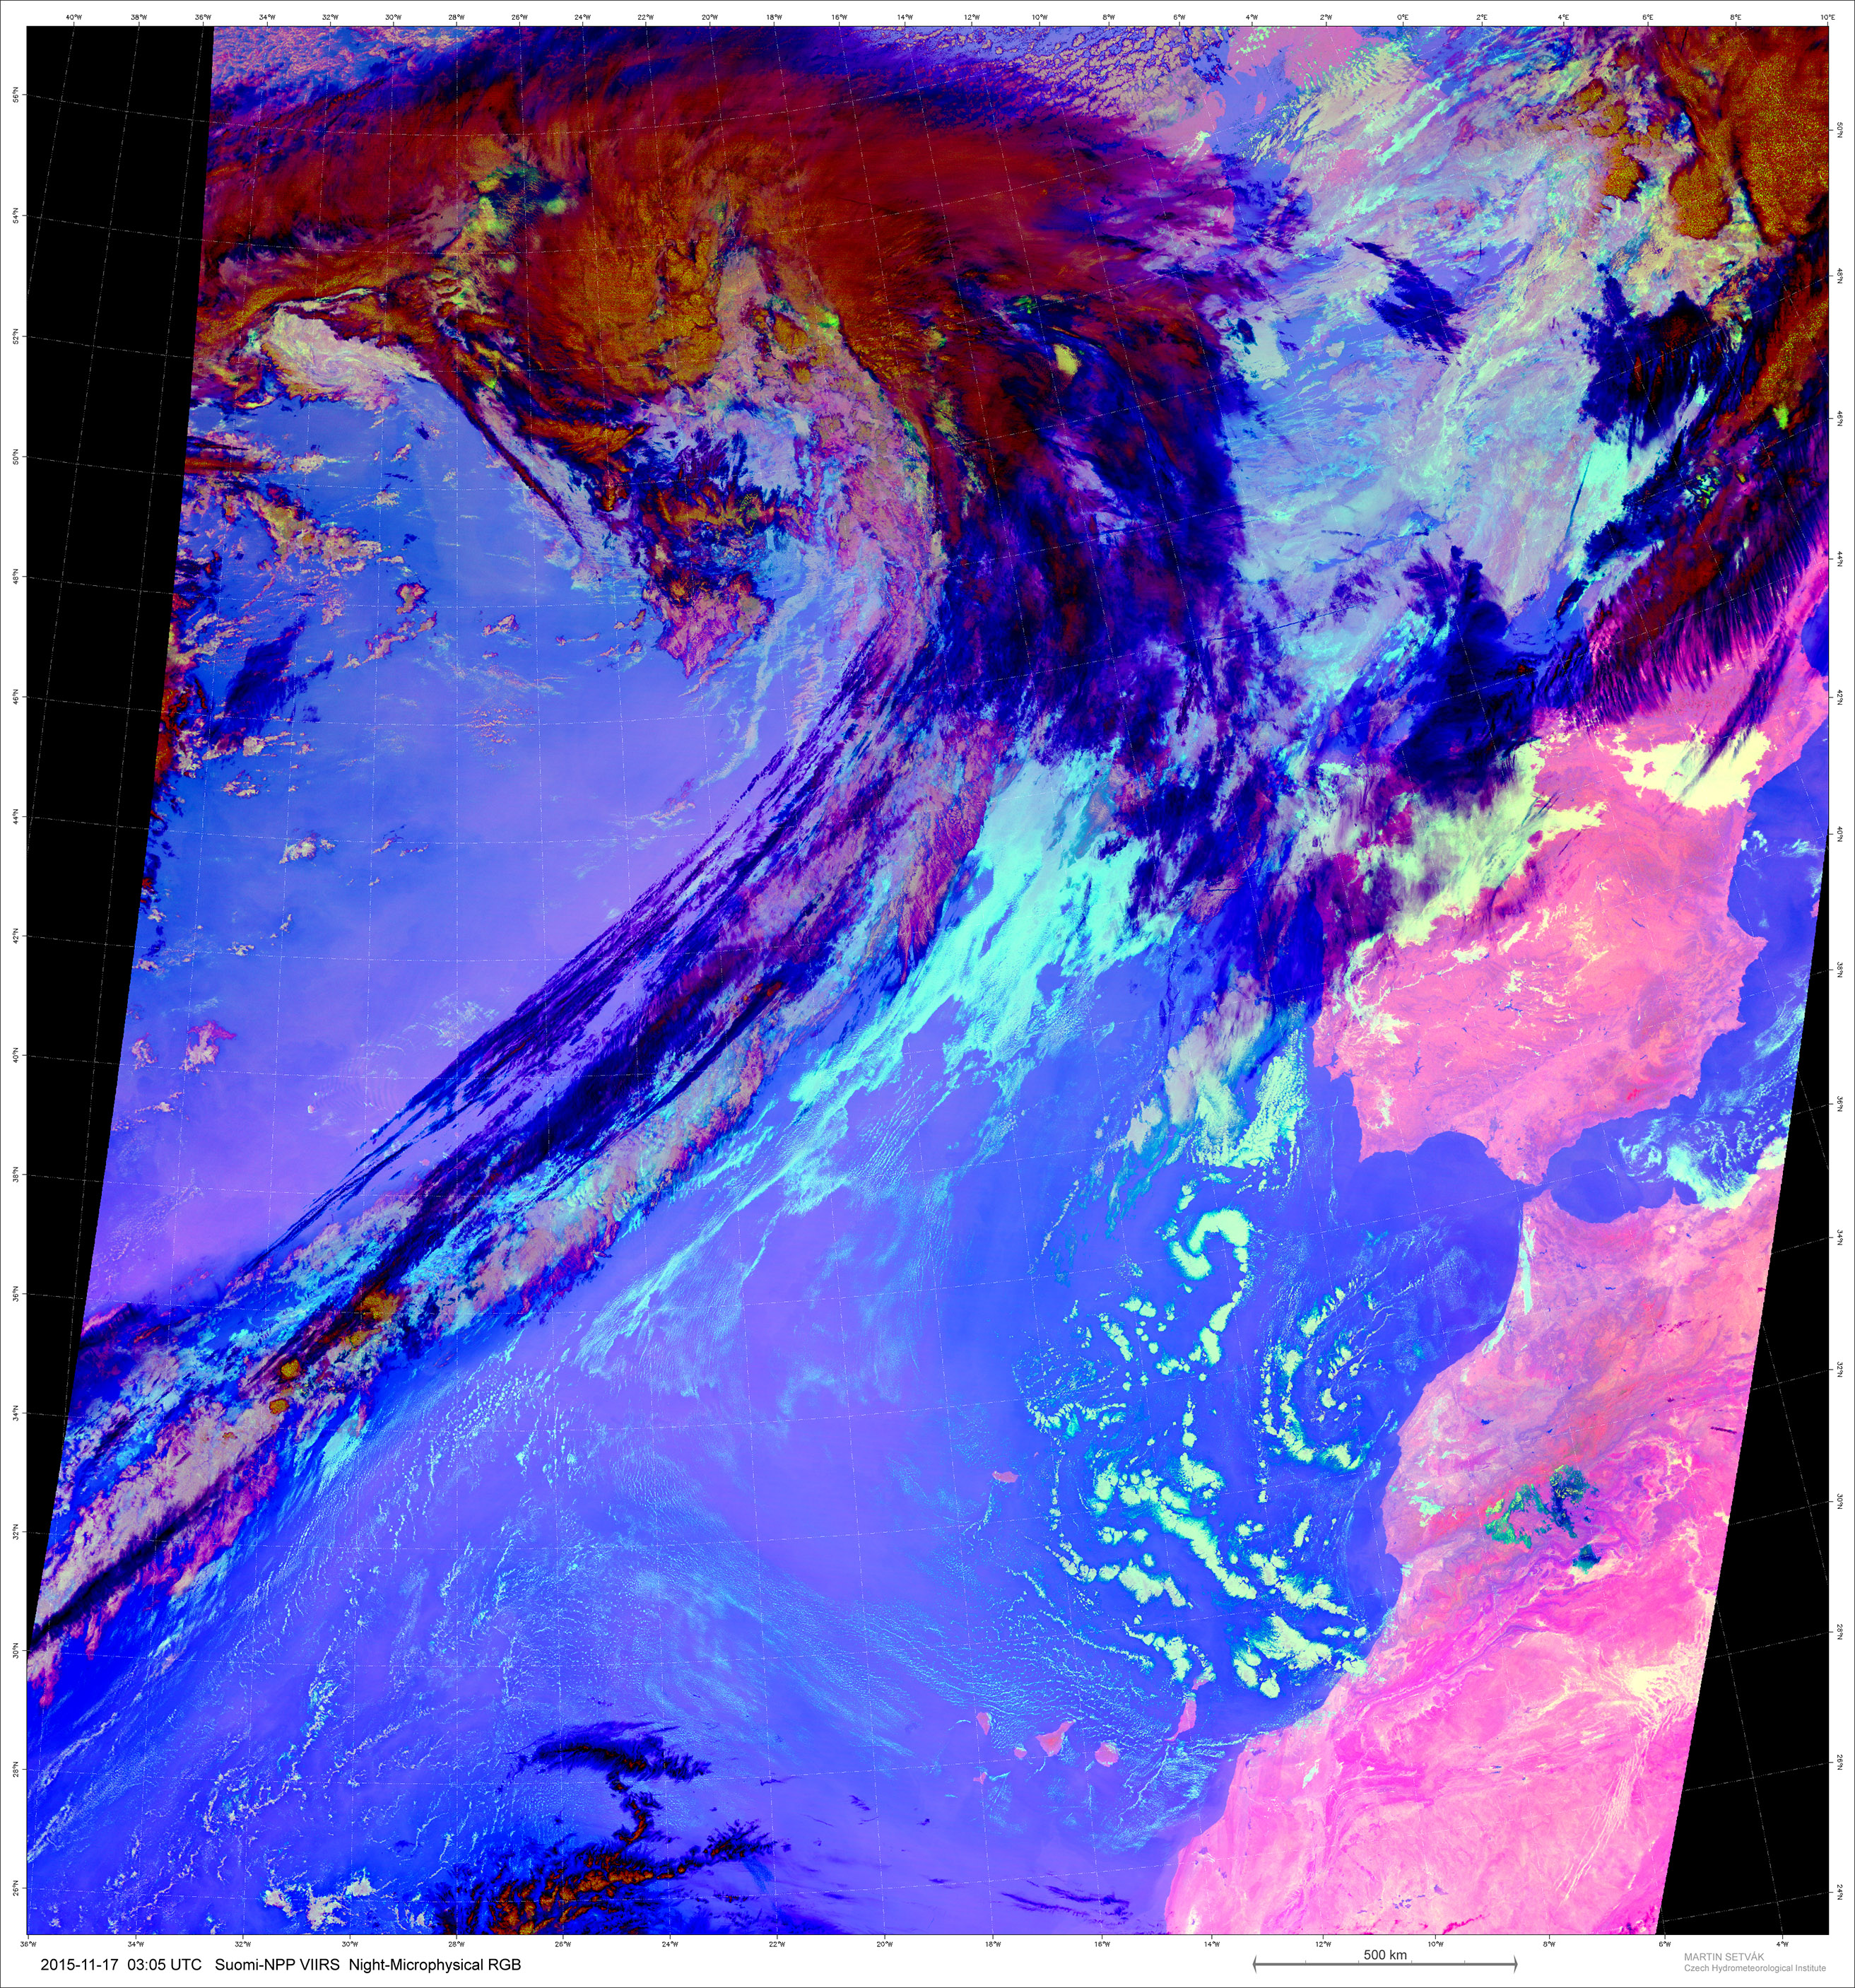 20151117_0305-UTC_NPP-VIIRS_TM-1KM_Night-Microphysical-RGB-net